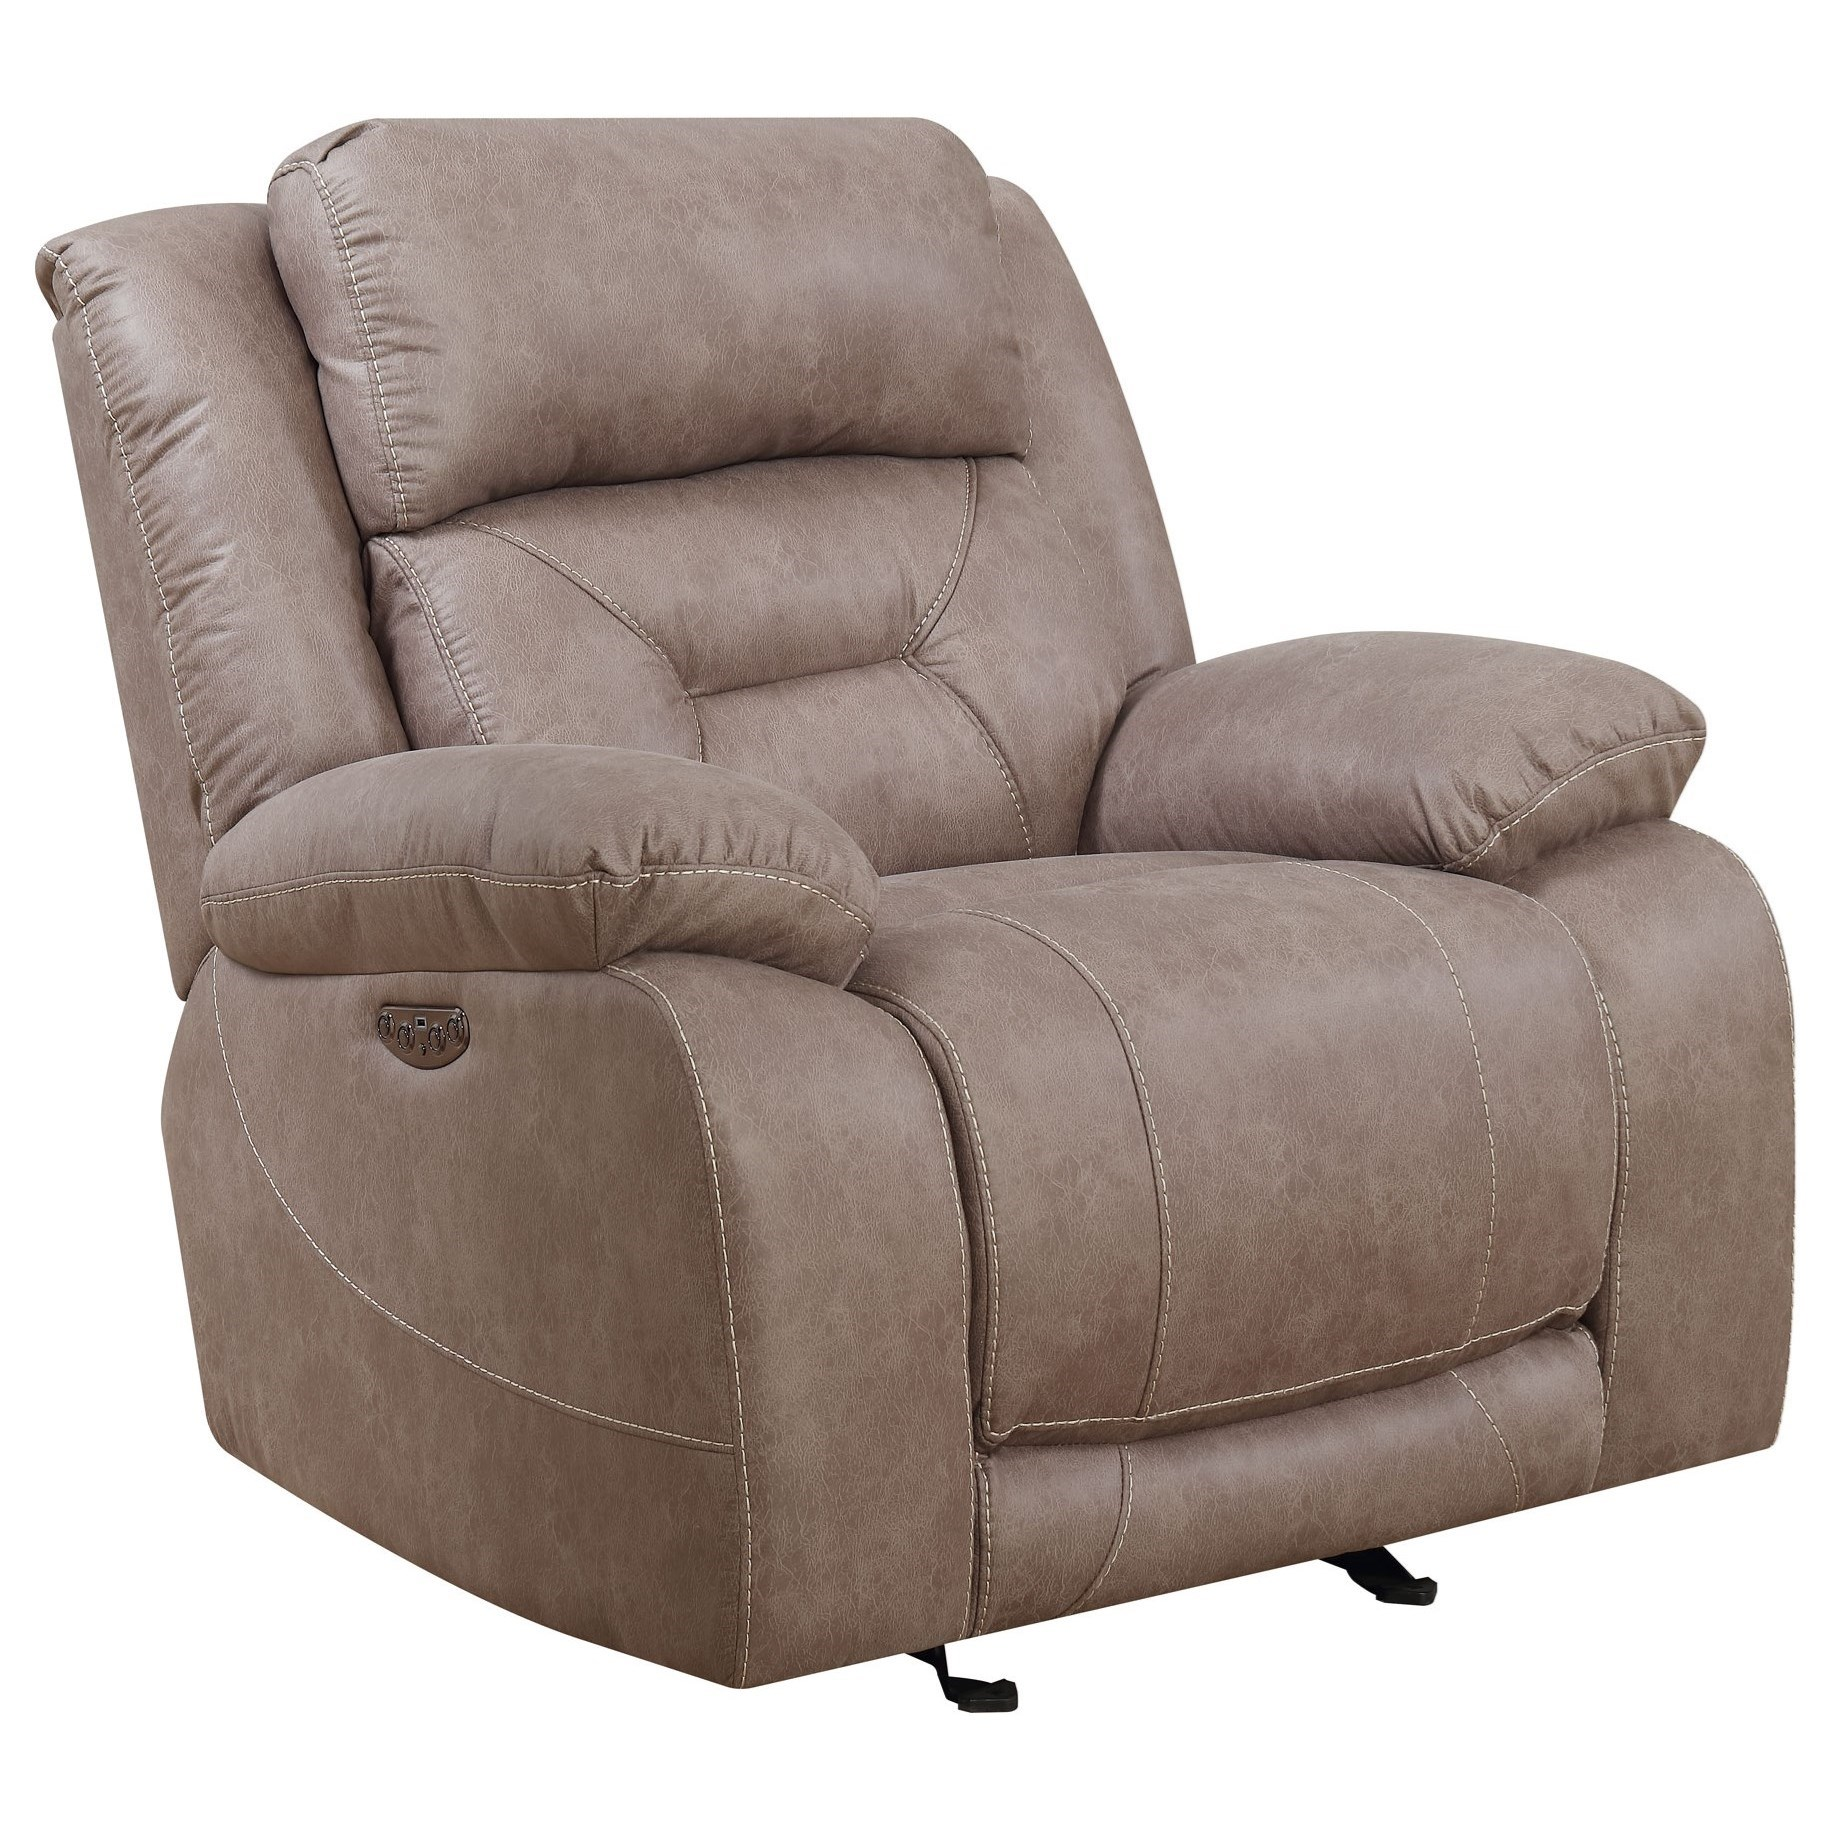 Aria Power Recliner by Vendor 3985 at Becker Furniture